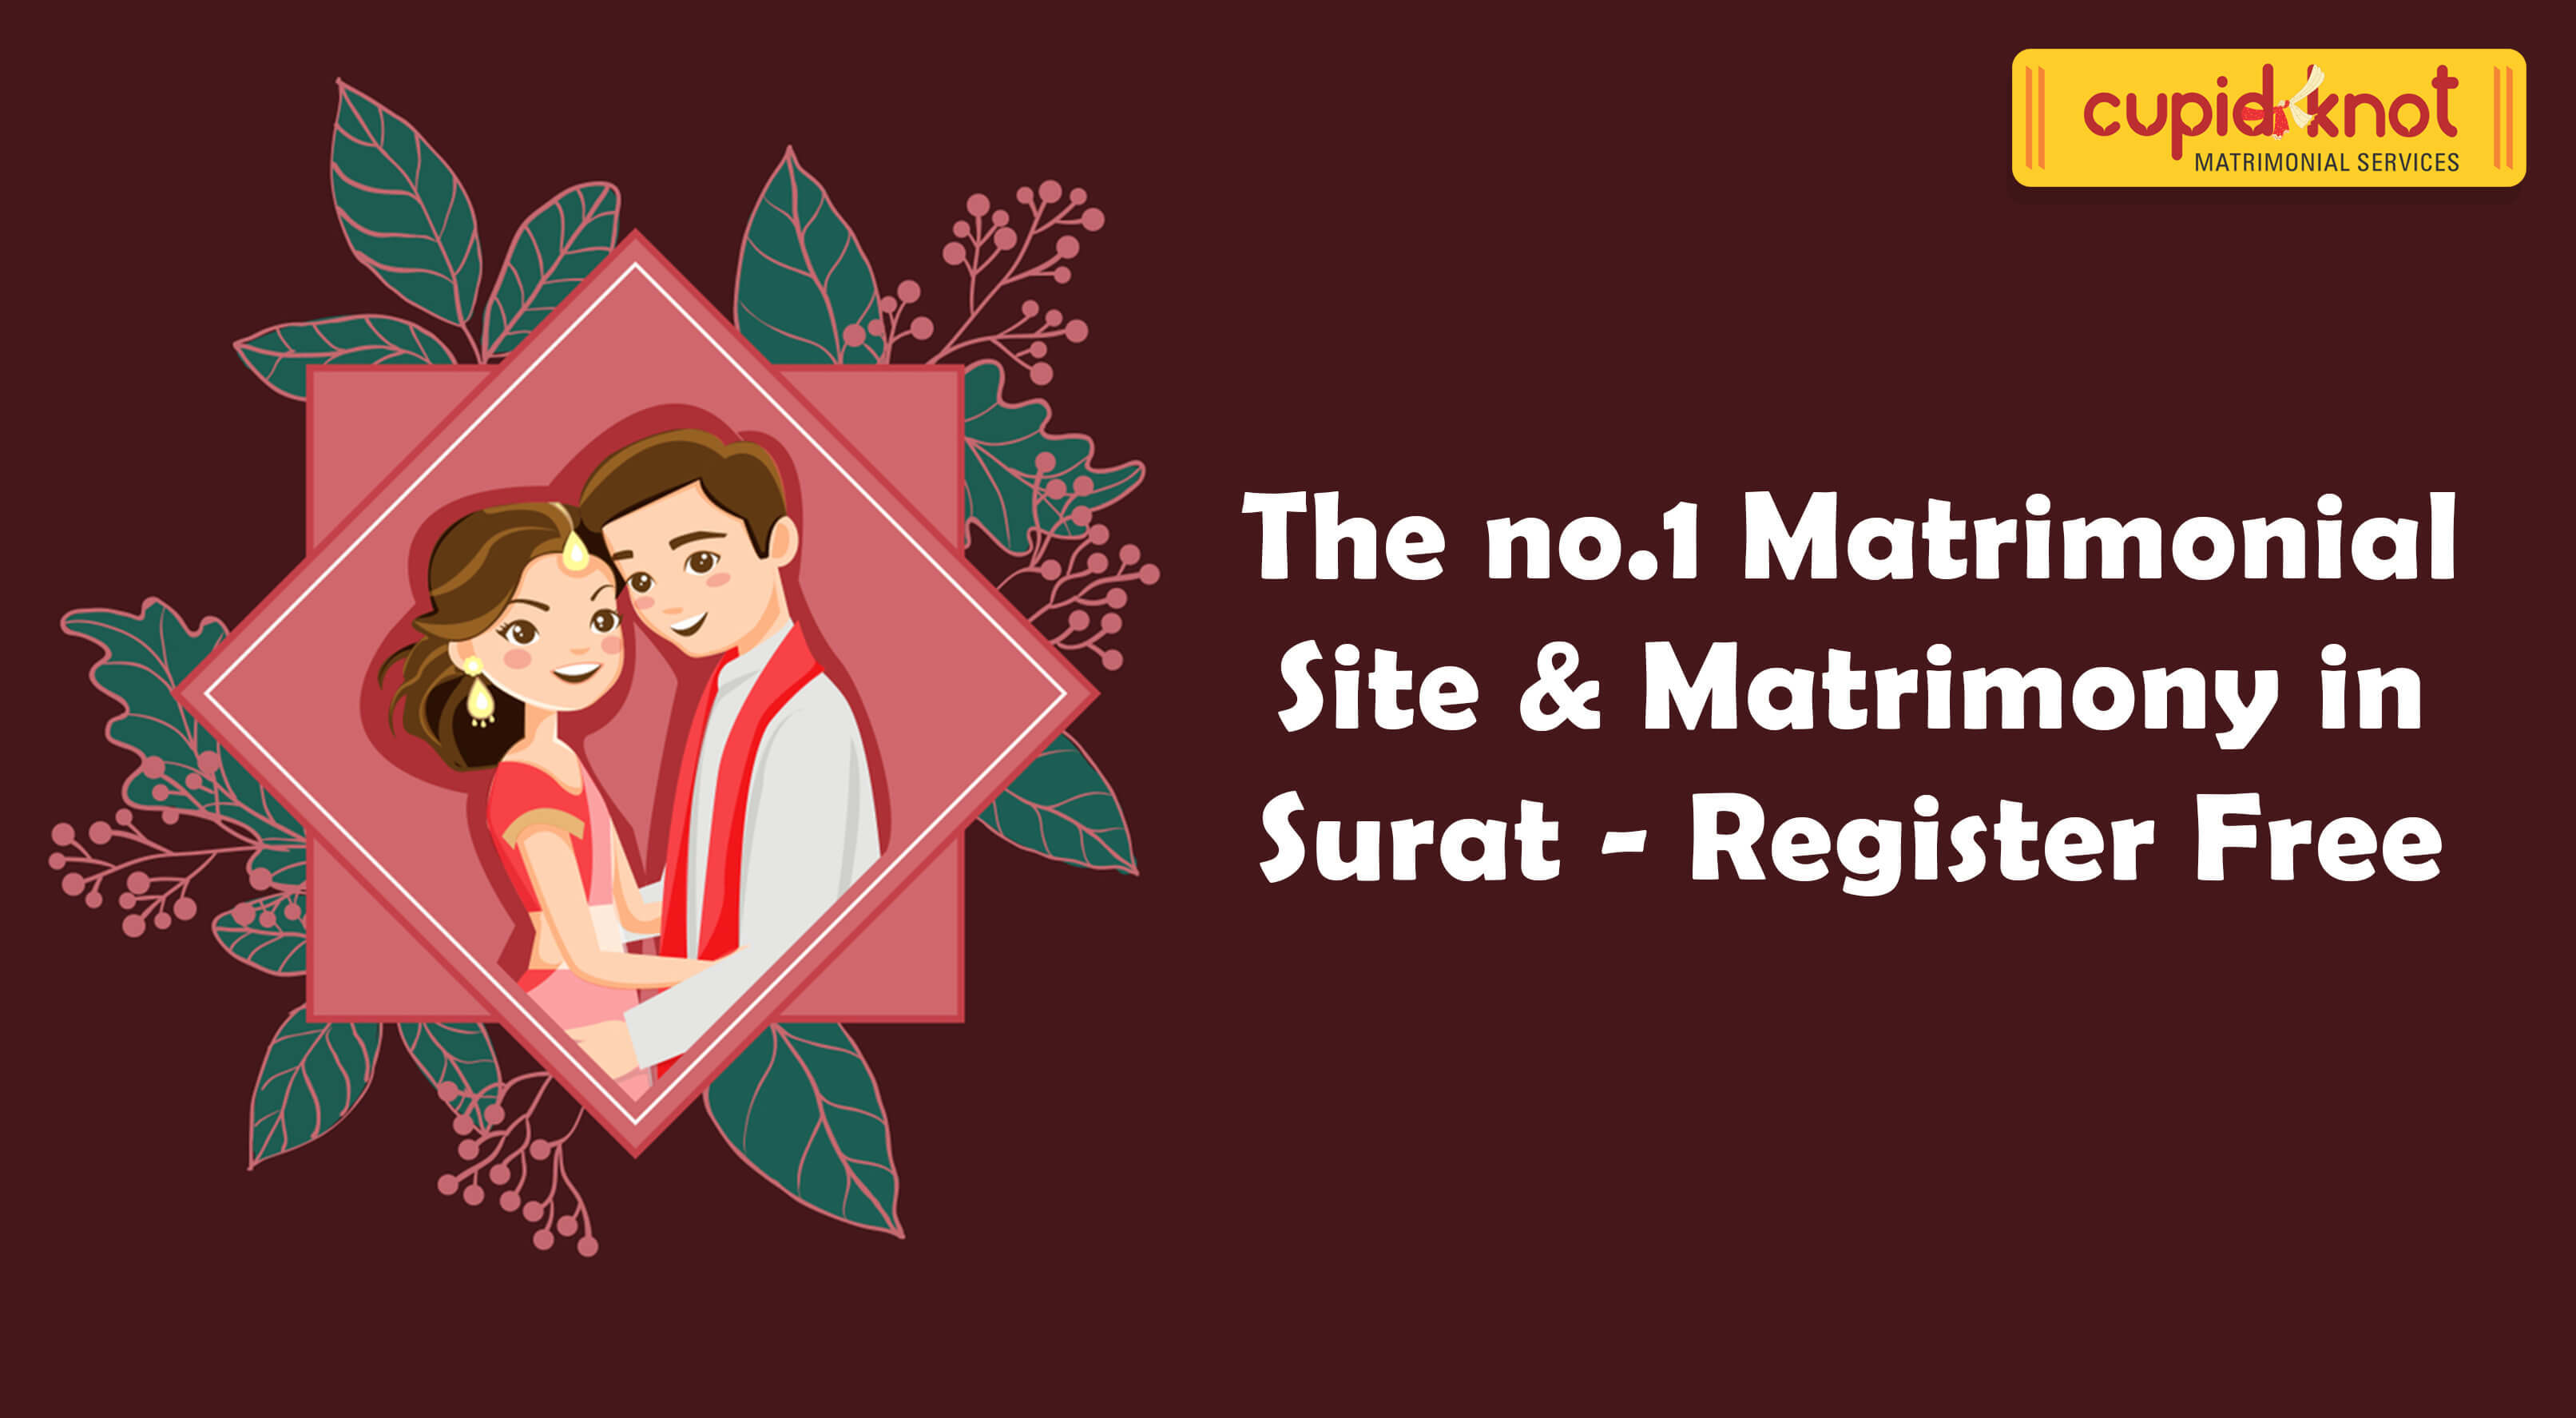 The no.1 Matrimonial Site & Matrimony in Surat - Register Free